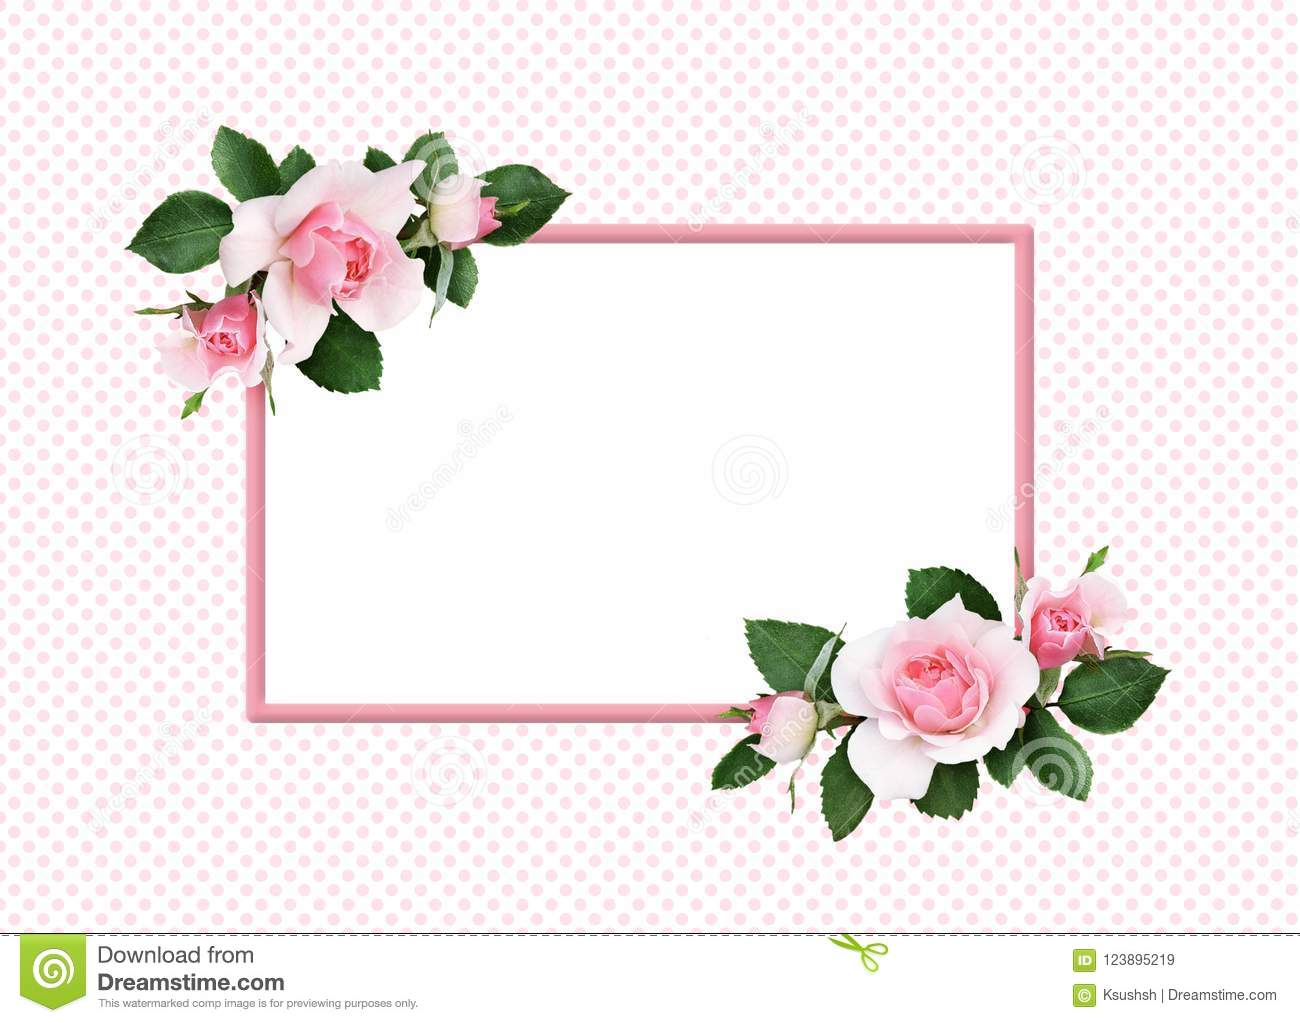 Pink rose flowers and green leaves in a floral corner arrangement and a frame